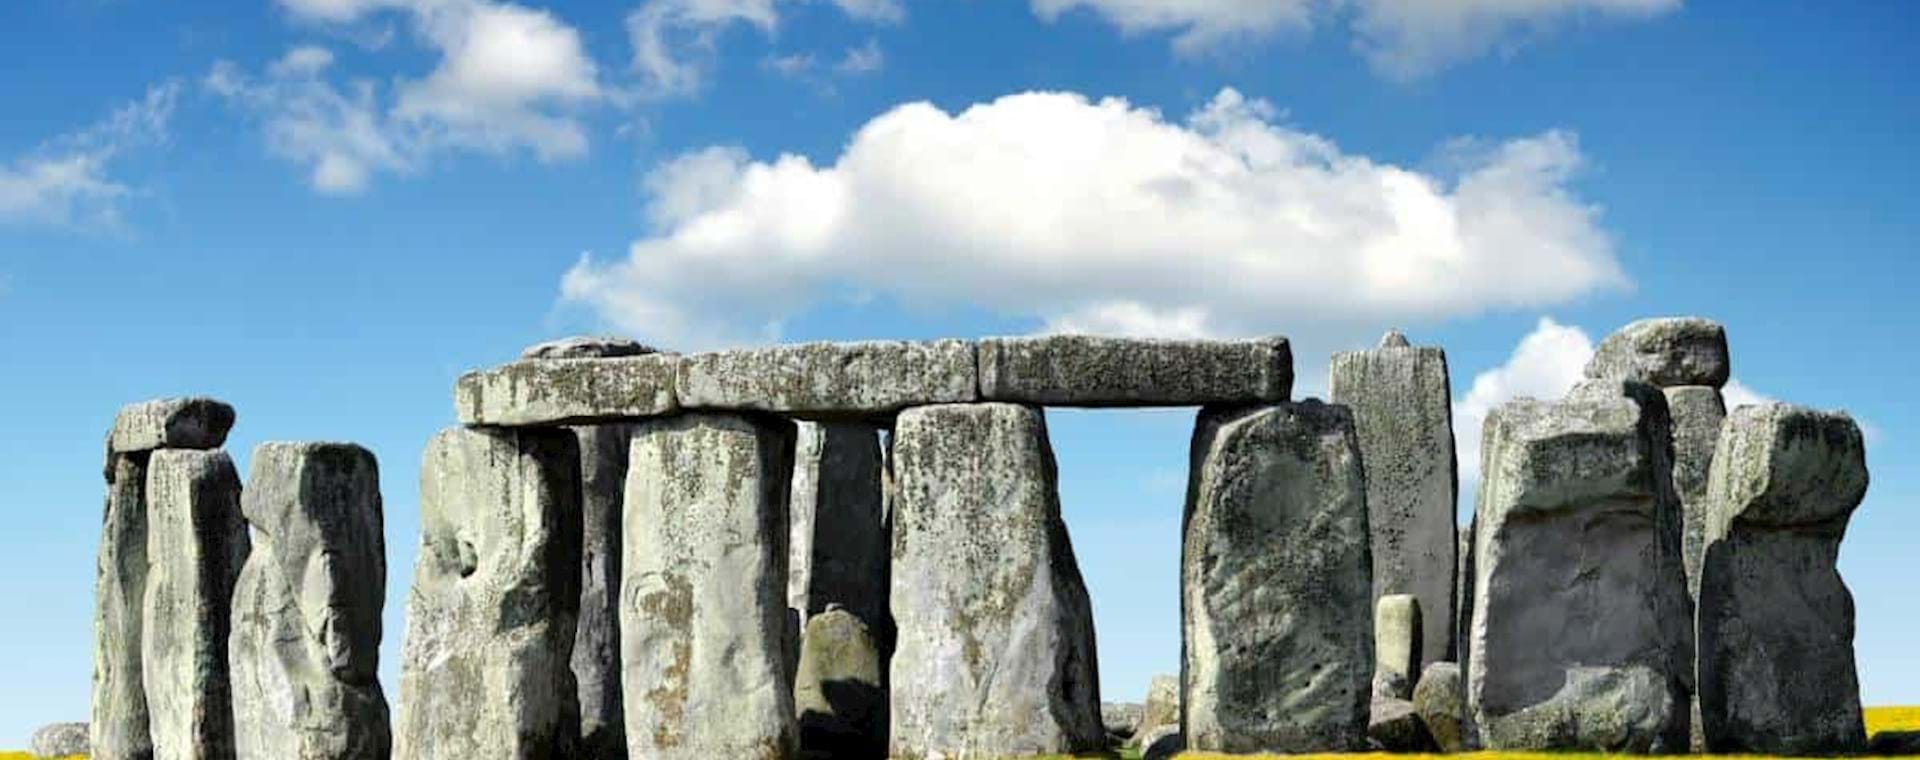 Panoramic view of Stonehenge in England on a sunny day